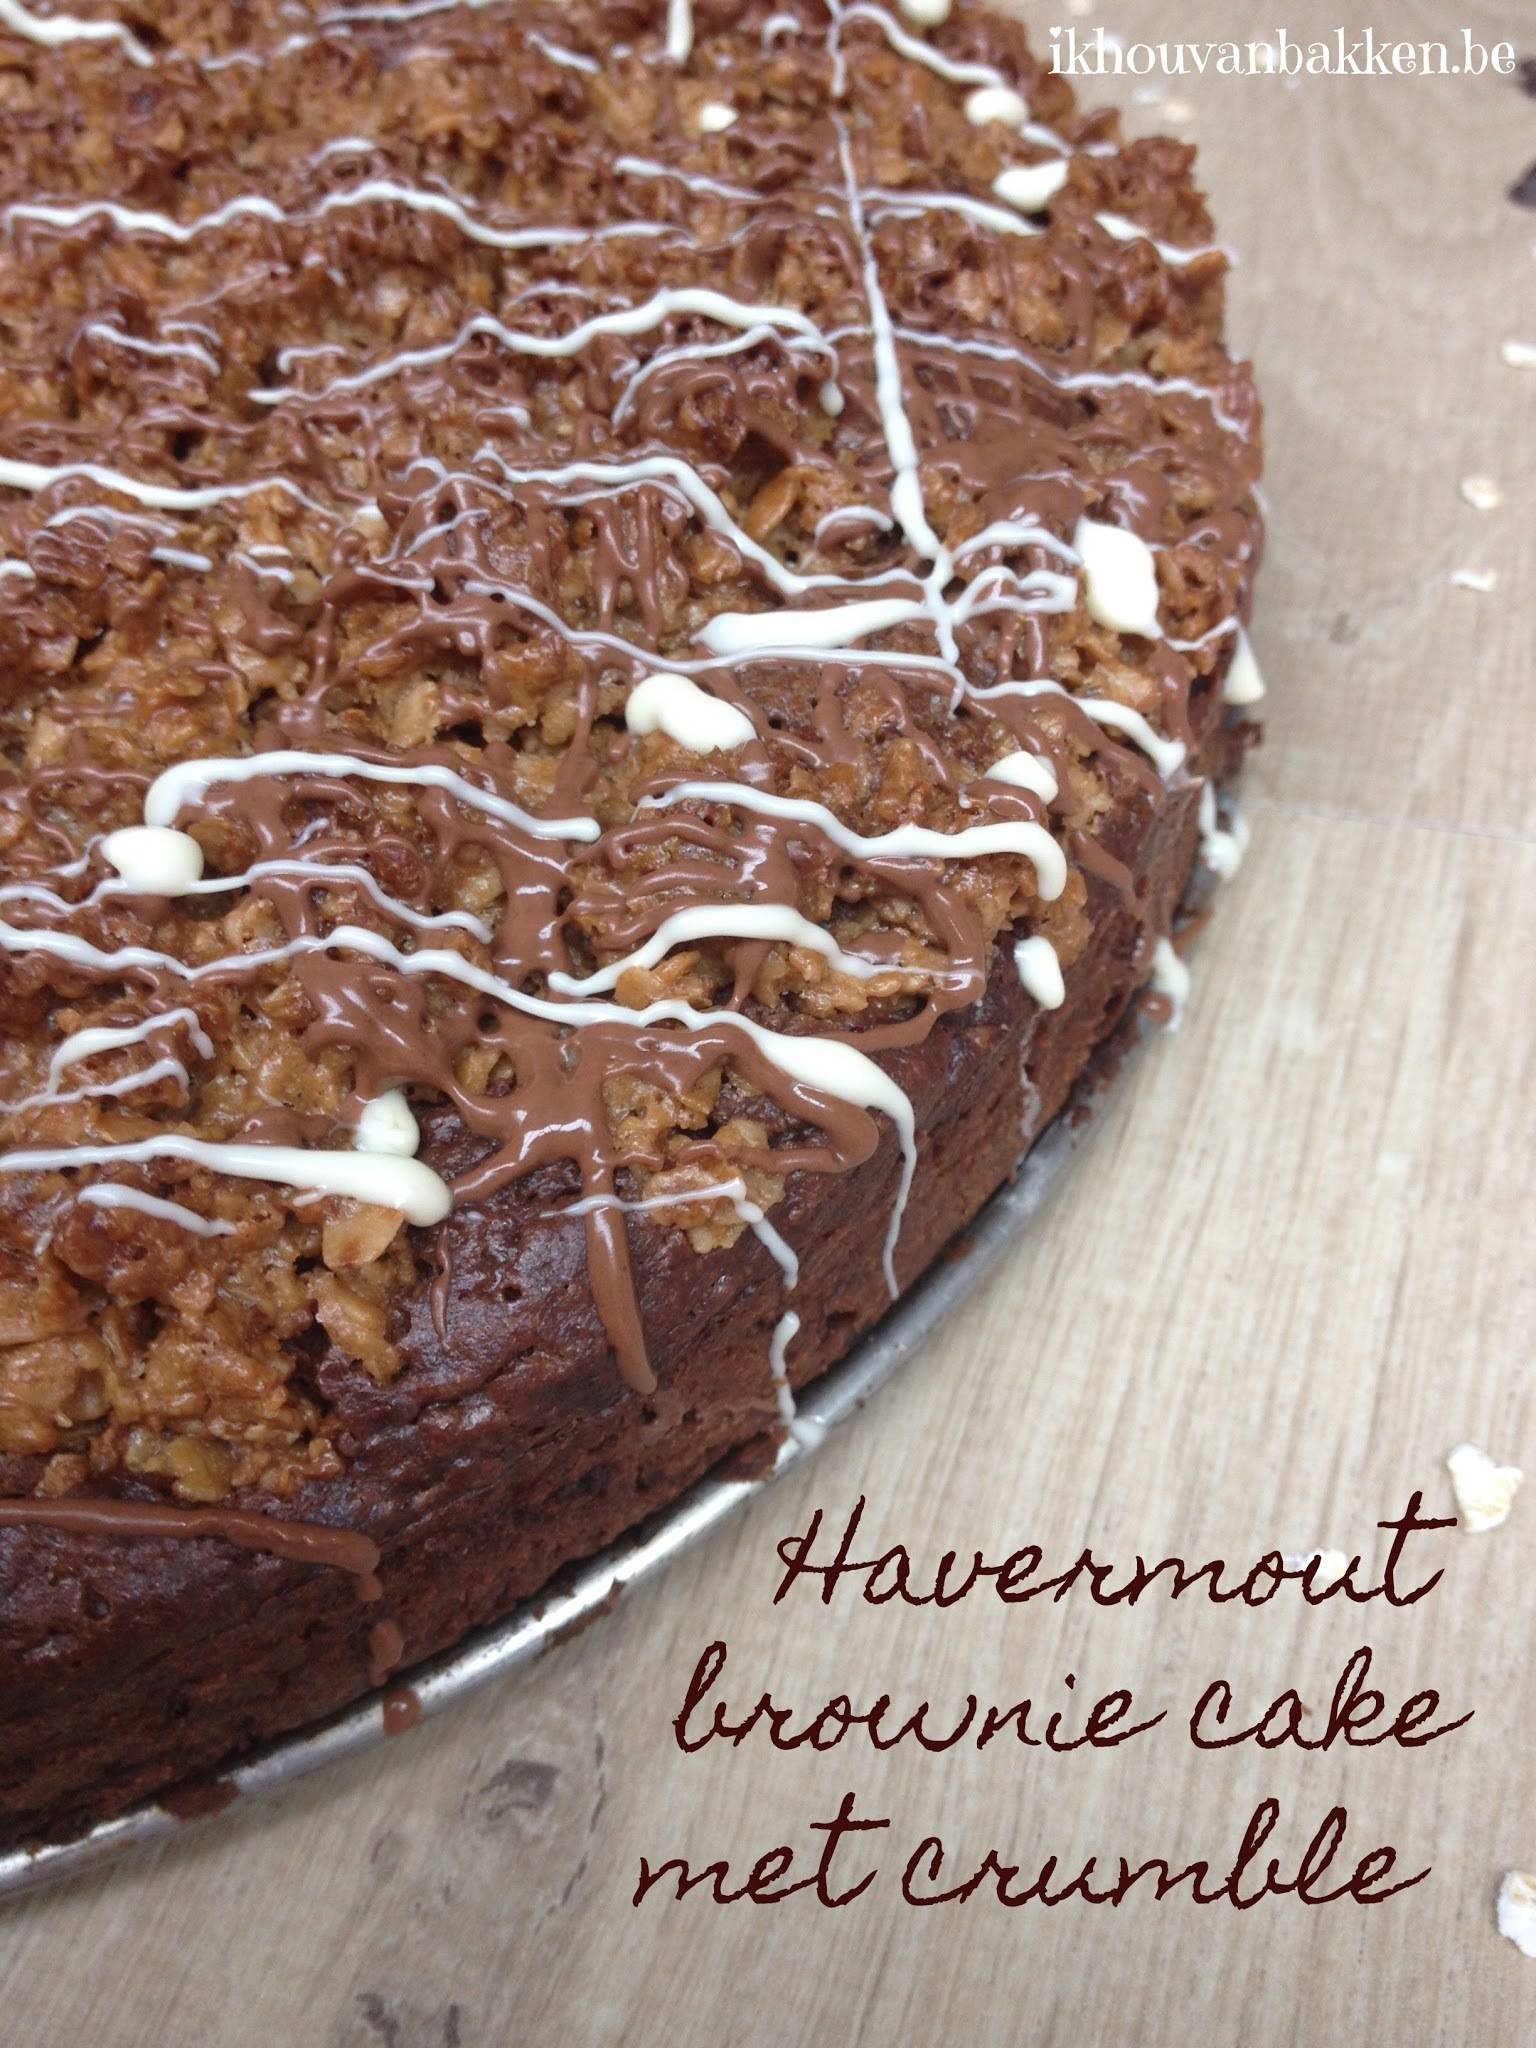 Havermout brownie cake met crumble